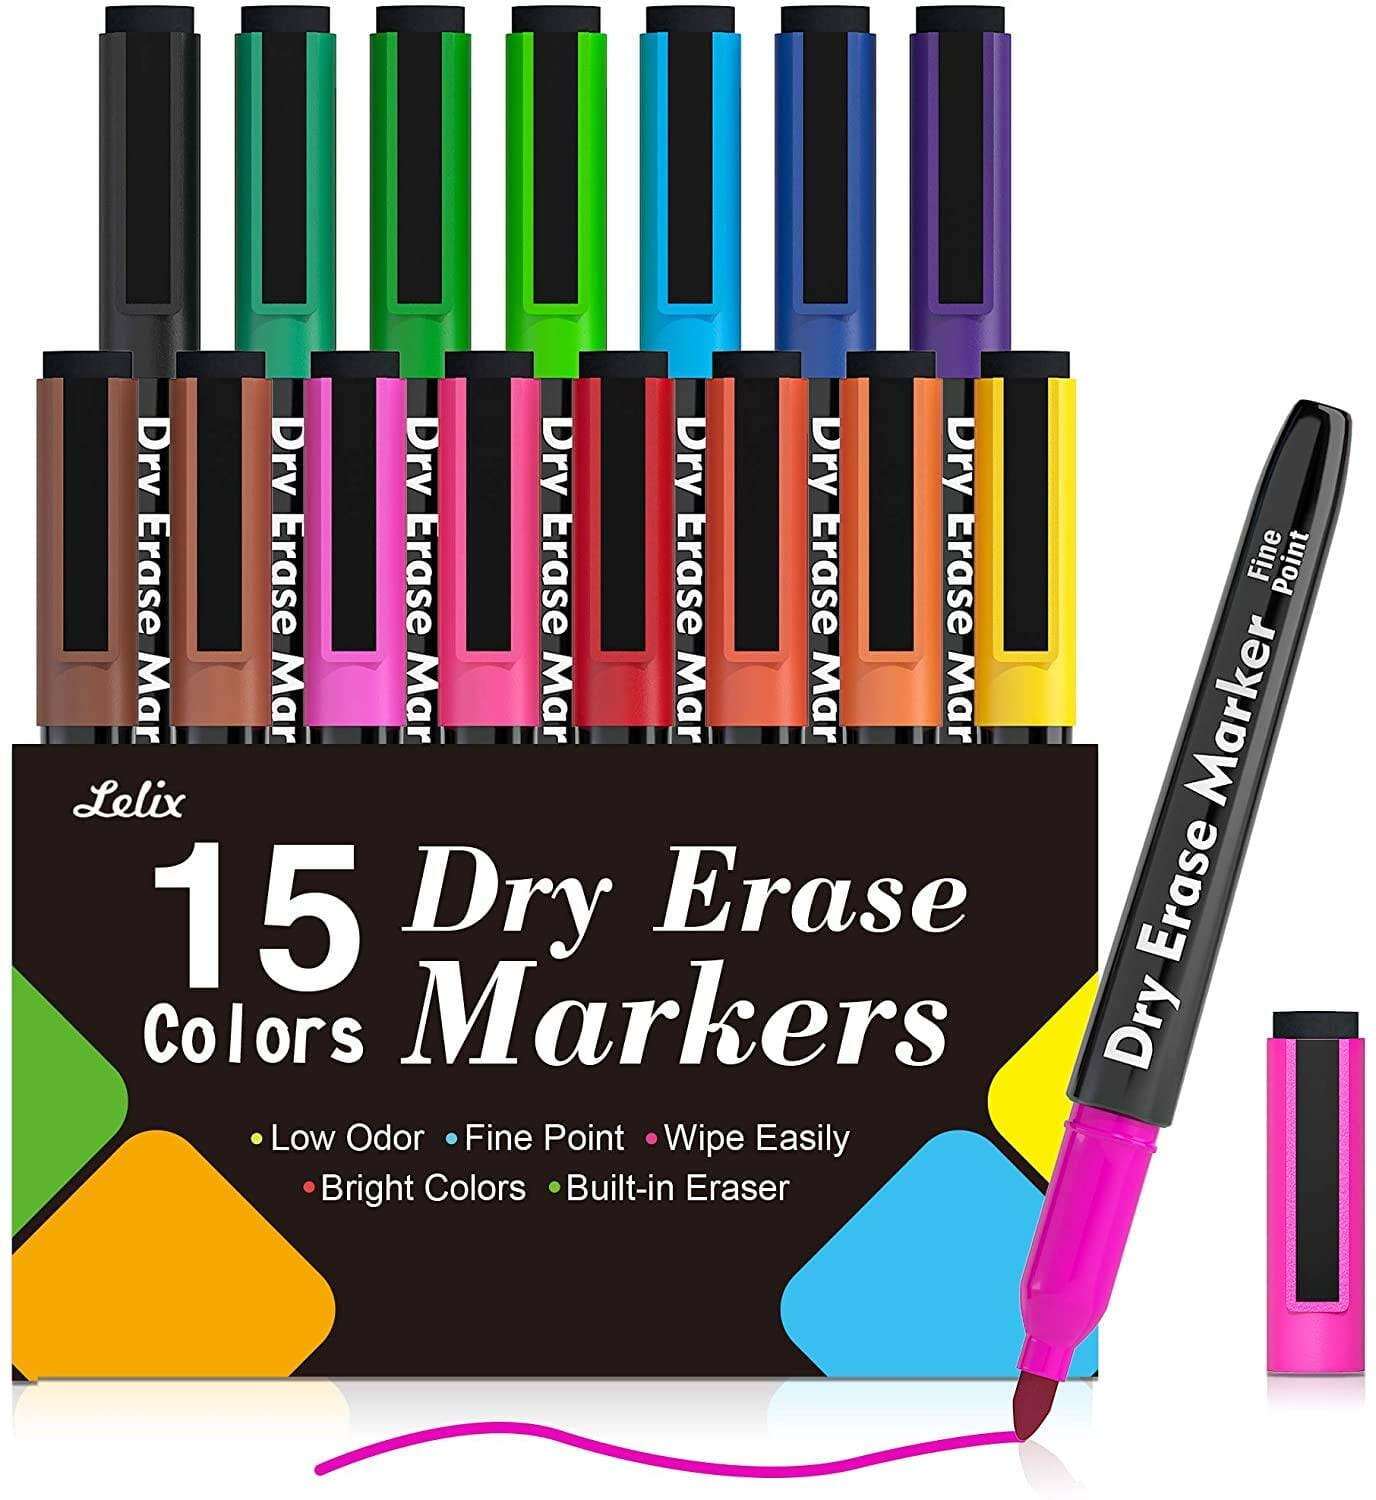 15-Pack Lelix Magnetic Dry Erase Markers $5.99 + Free Shipping w/ Prime or $25+